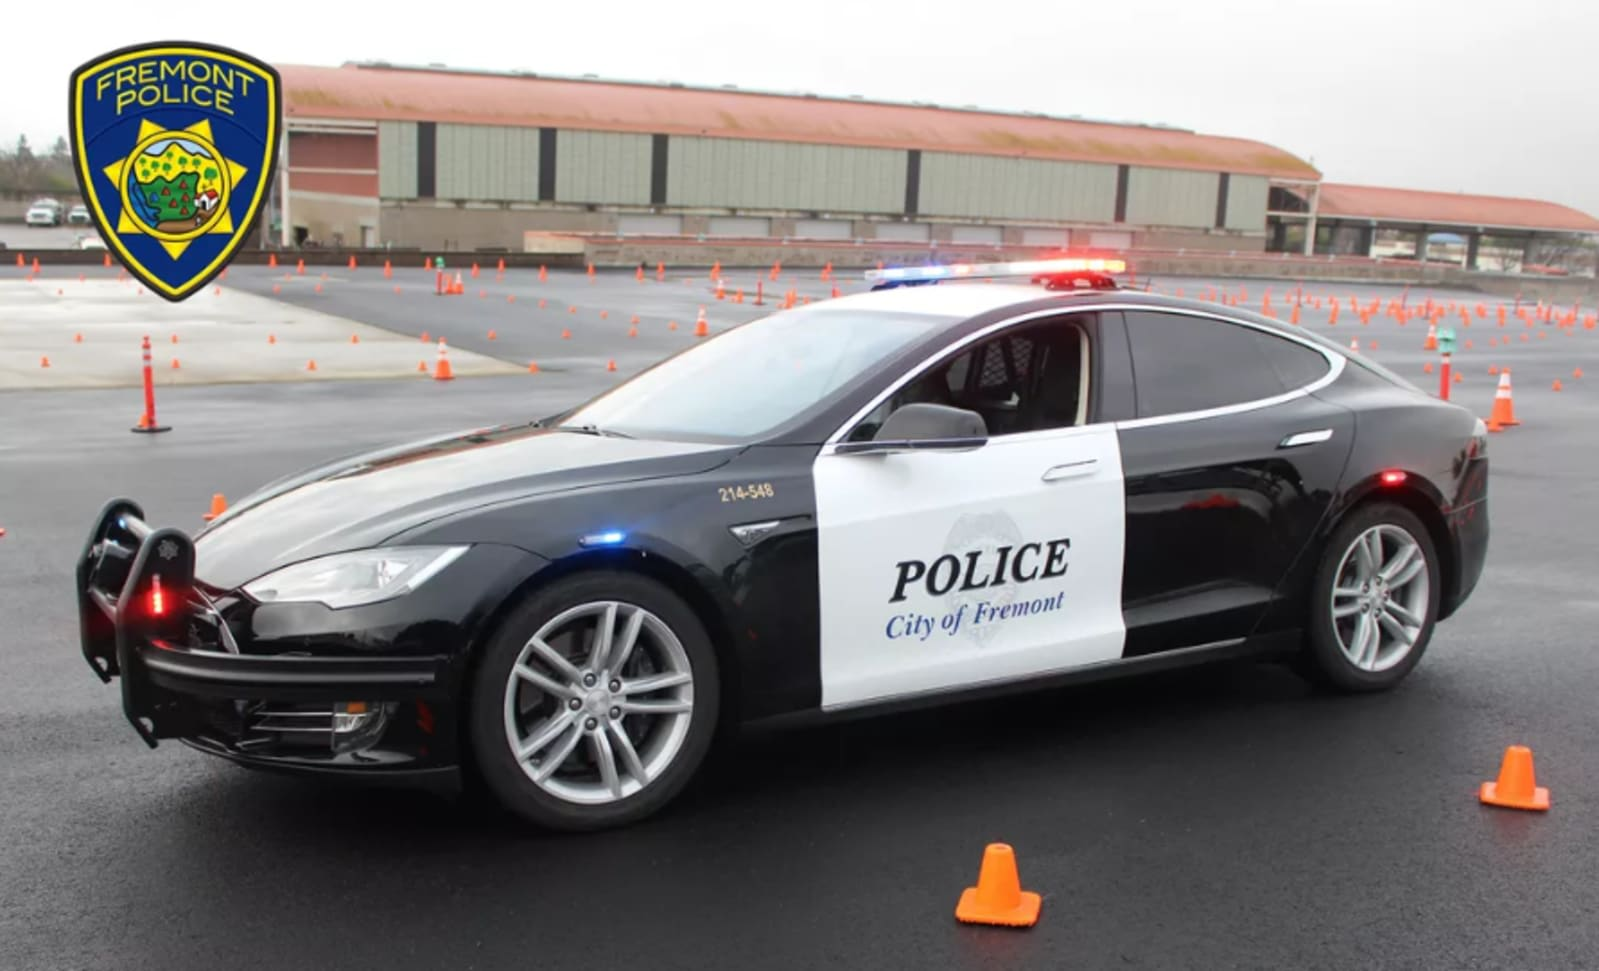 Turns out Tesla police cars run out of 'gas' mid-chase, too